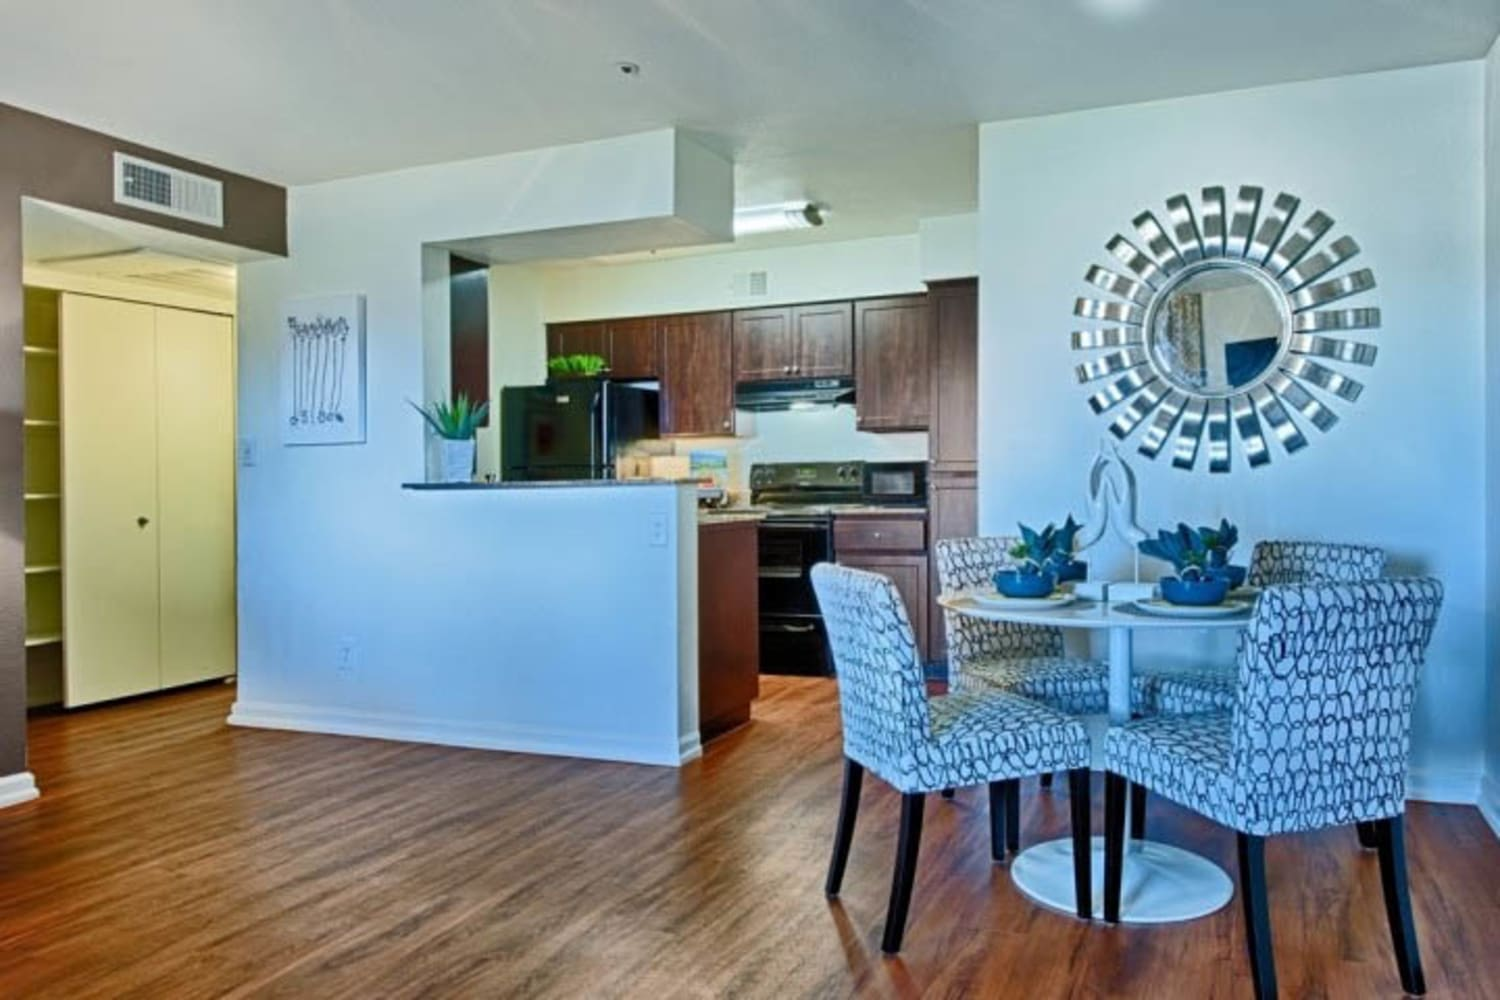 Cabrillo Apartments offer lovely dining room interiors in Scottsdale, Arizona,